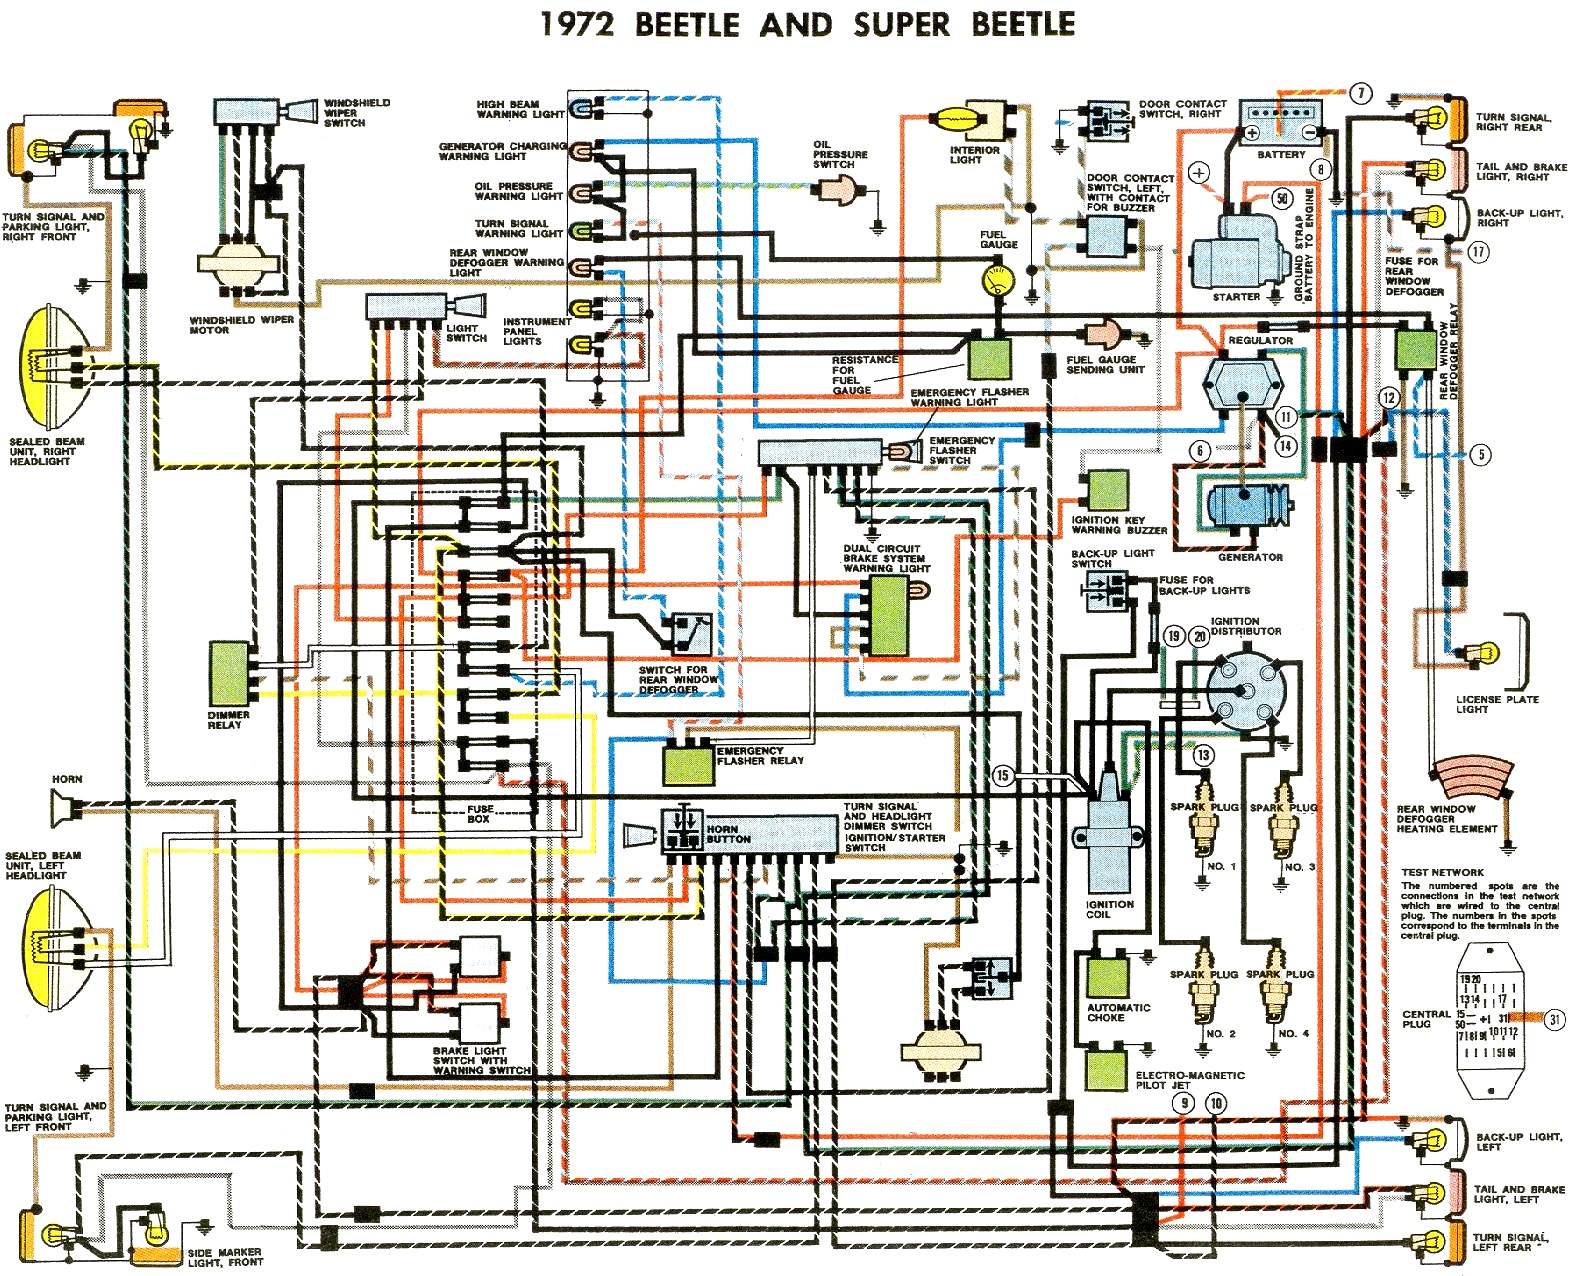 1972 beetle wiring diagram thegoldenbug com rh thegoldenbug com 1972 vw beetle electrical diagram 1971 vw beetle wiring diagram